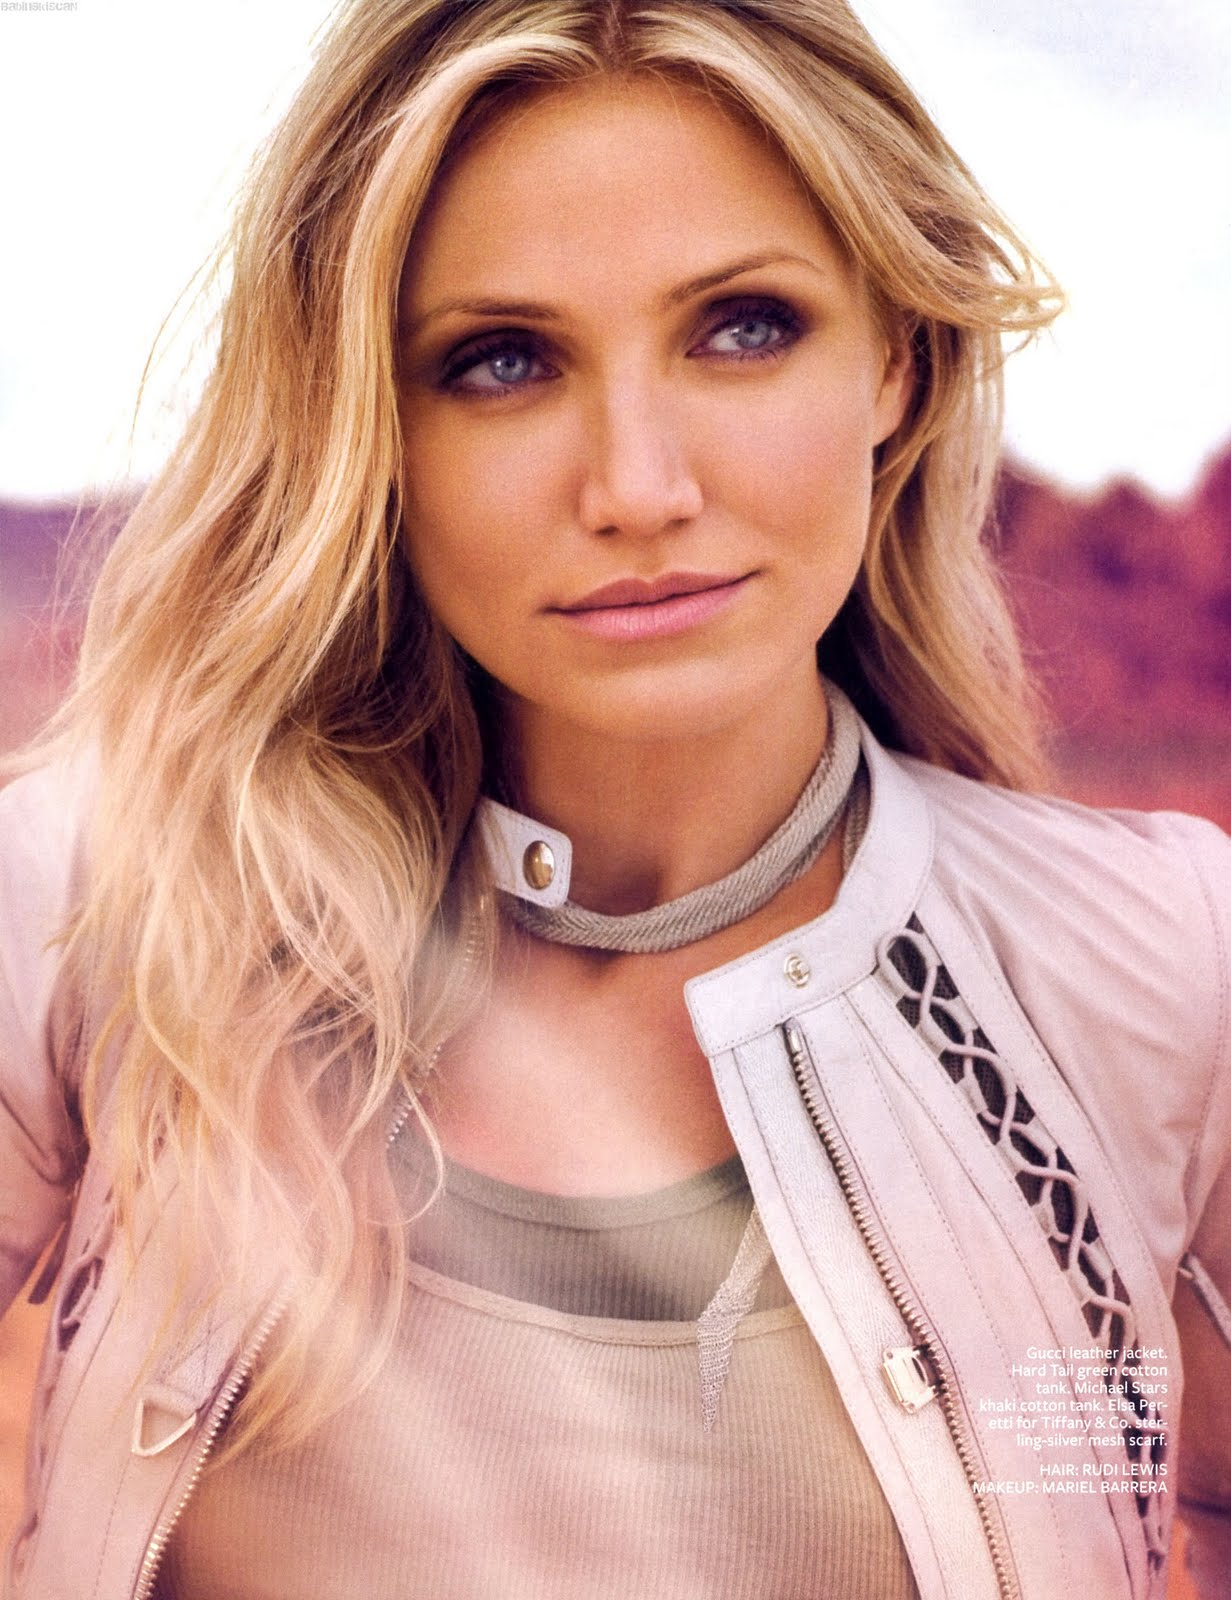 Cameron Diaz For Us Instyle July 2010 Photographed By